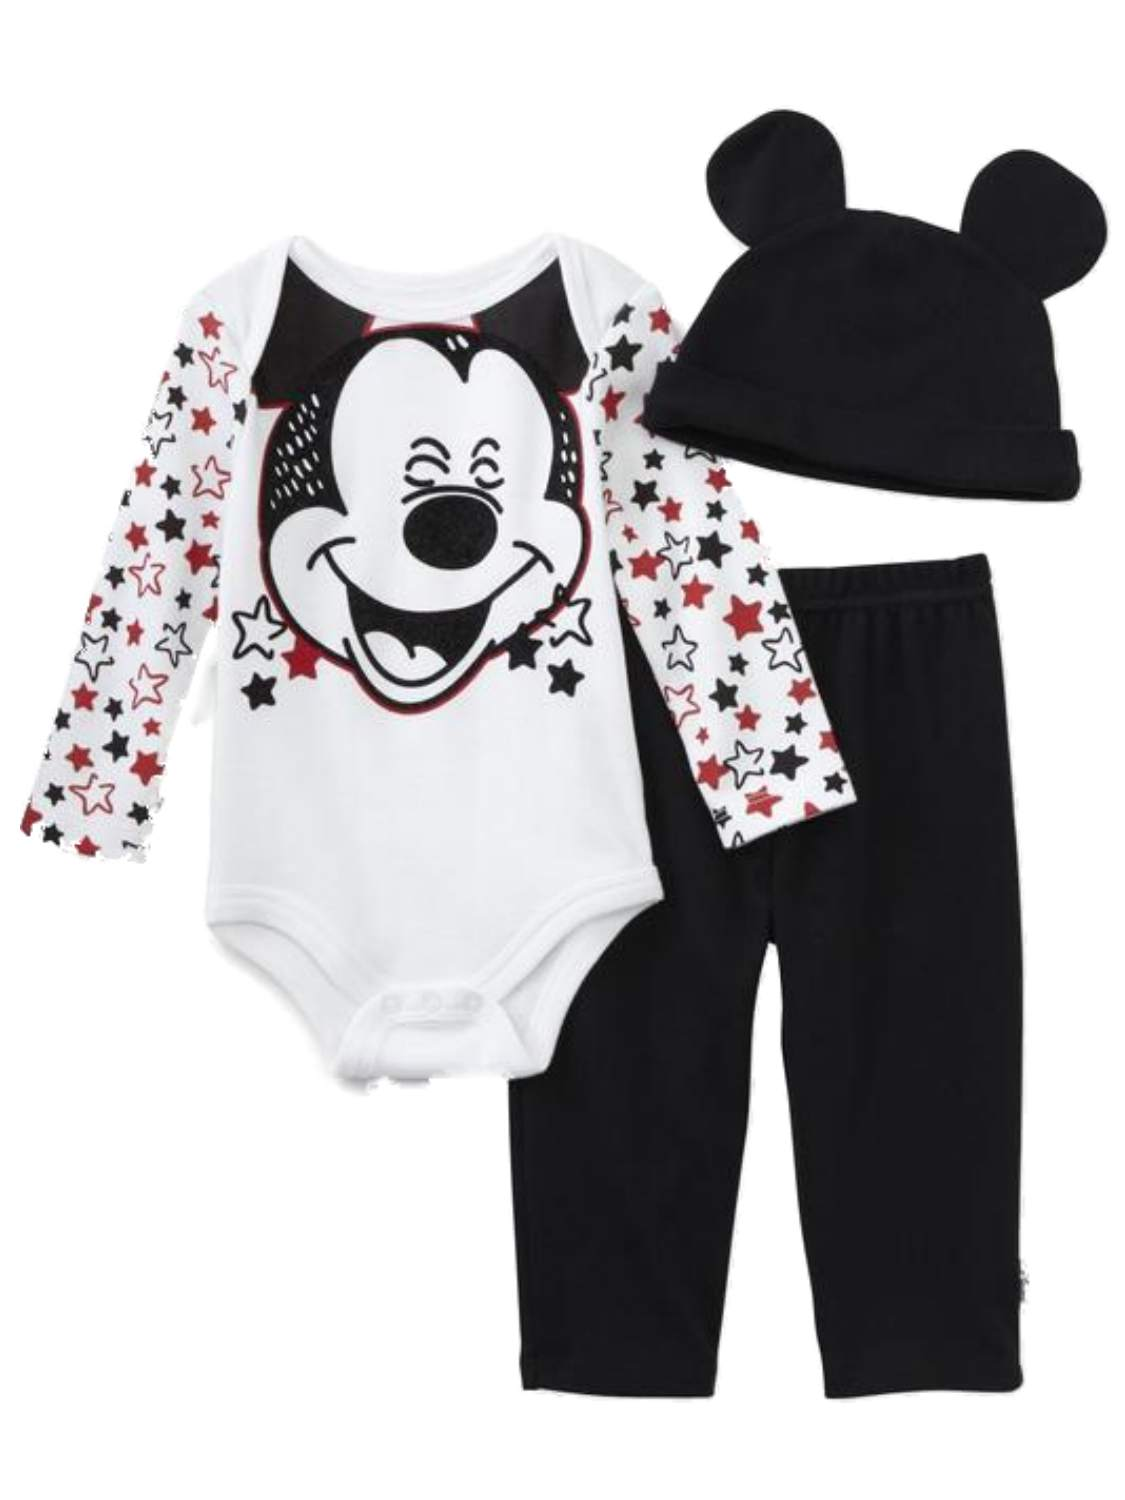 Disney Infant Boys Laughing Mickey Mouse Stars Baby Outfit Beanie Hat Set